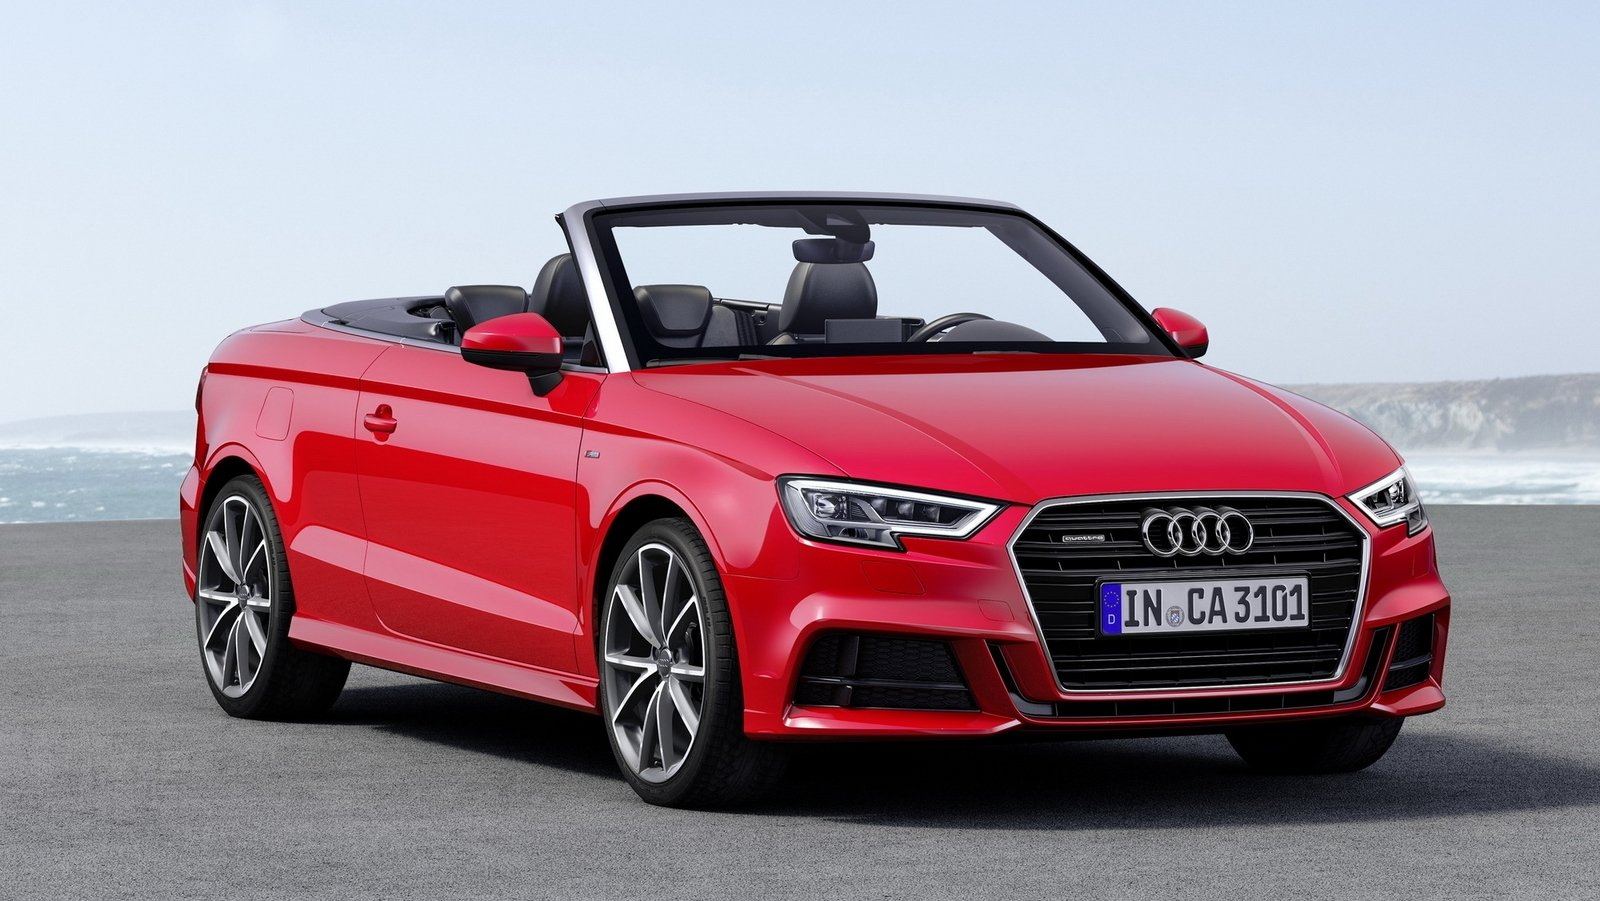 2017 2018 audi a3 convertible review gallery top speed. Black Bedroom Furniture Sets. Home Design Ideas